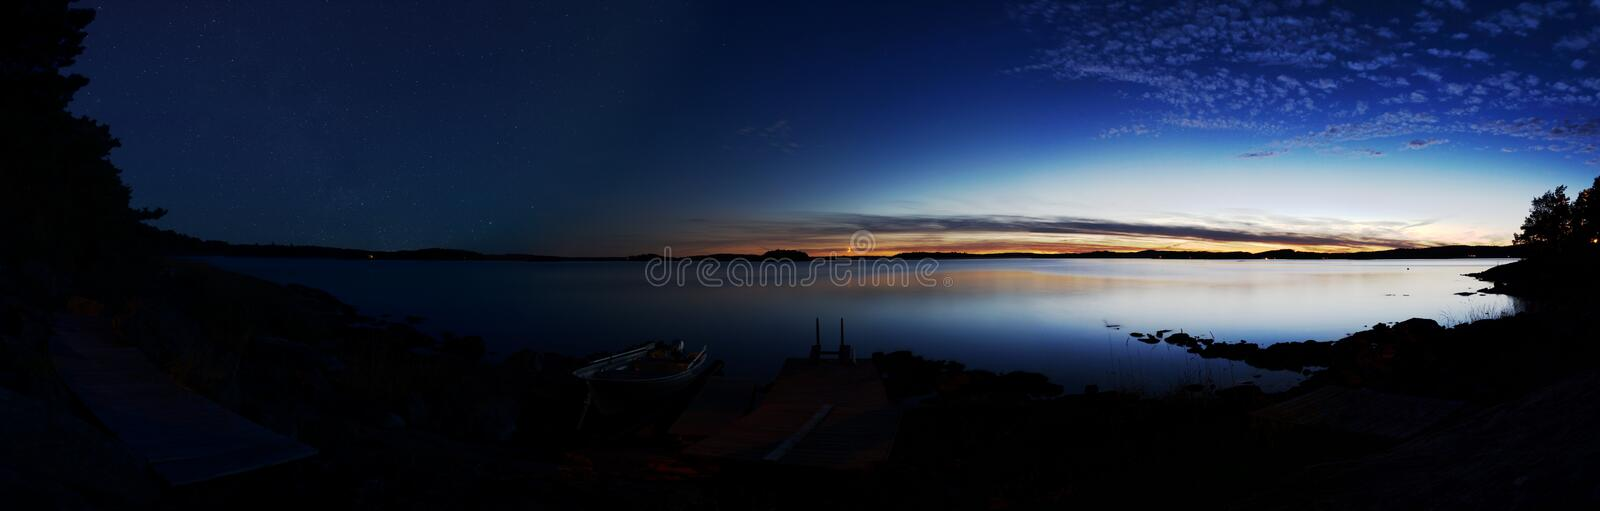 Time laps panorama: Lake with a sunset on the right and the night star sky on the left stock image